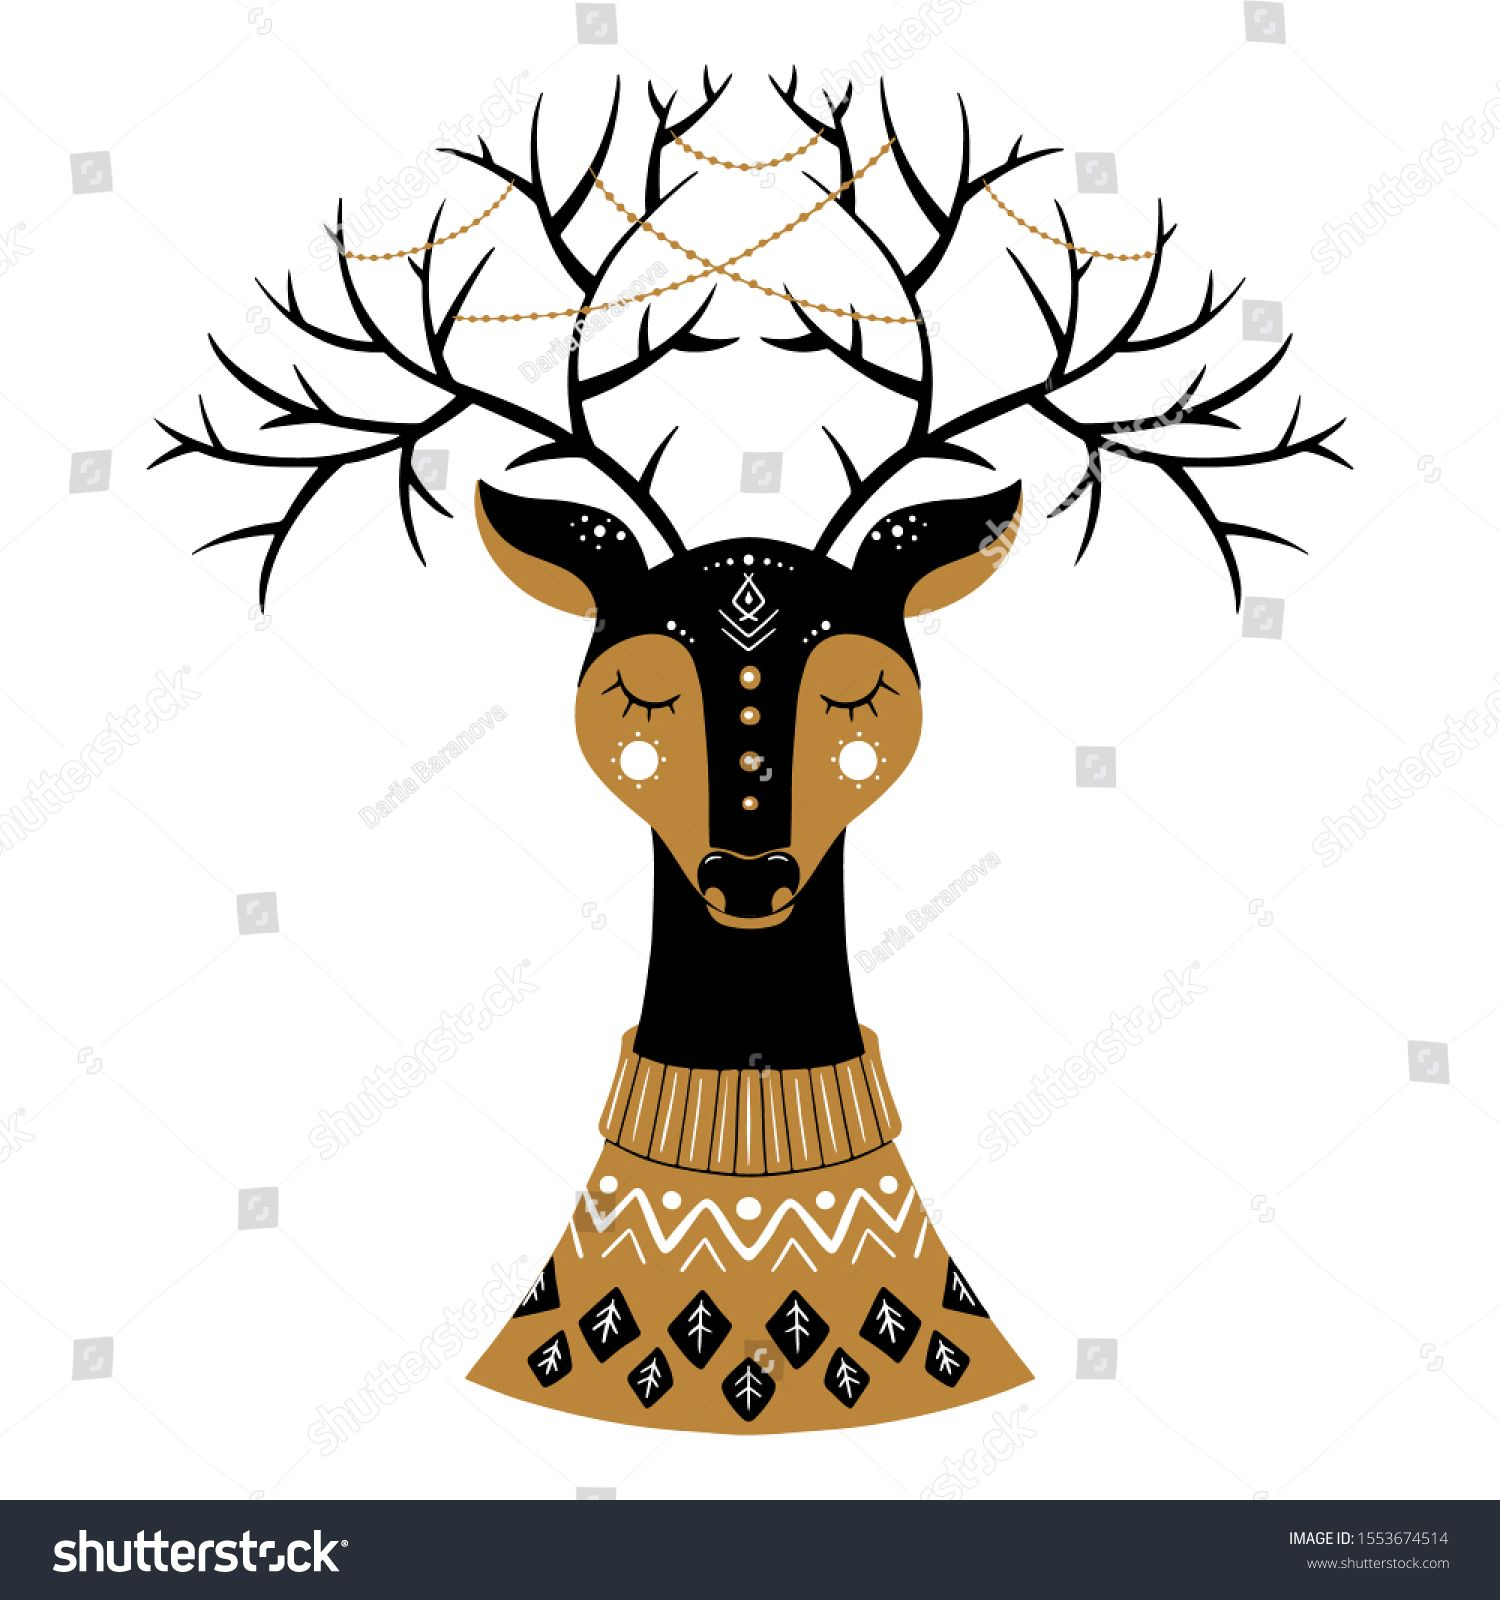 Vector Christmas Illustration In Scandinavian Style Cute Reindeer With Large Horns Holiday Greeting Car In 2020 Christmas Drawing Christmas Illustration Art Drawings